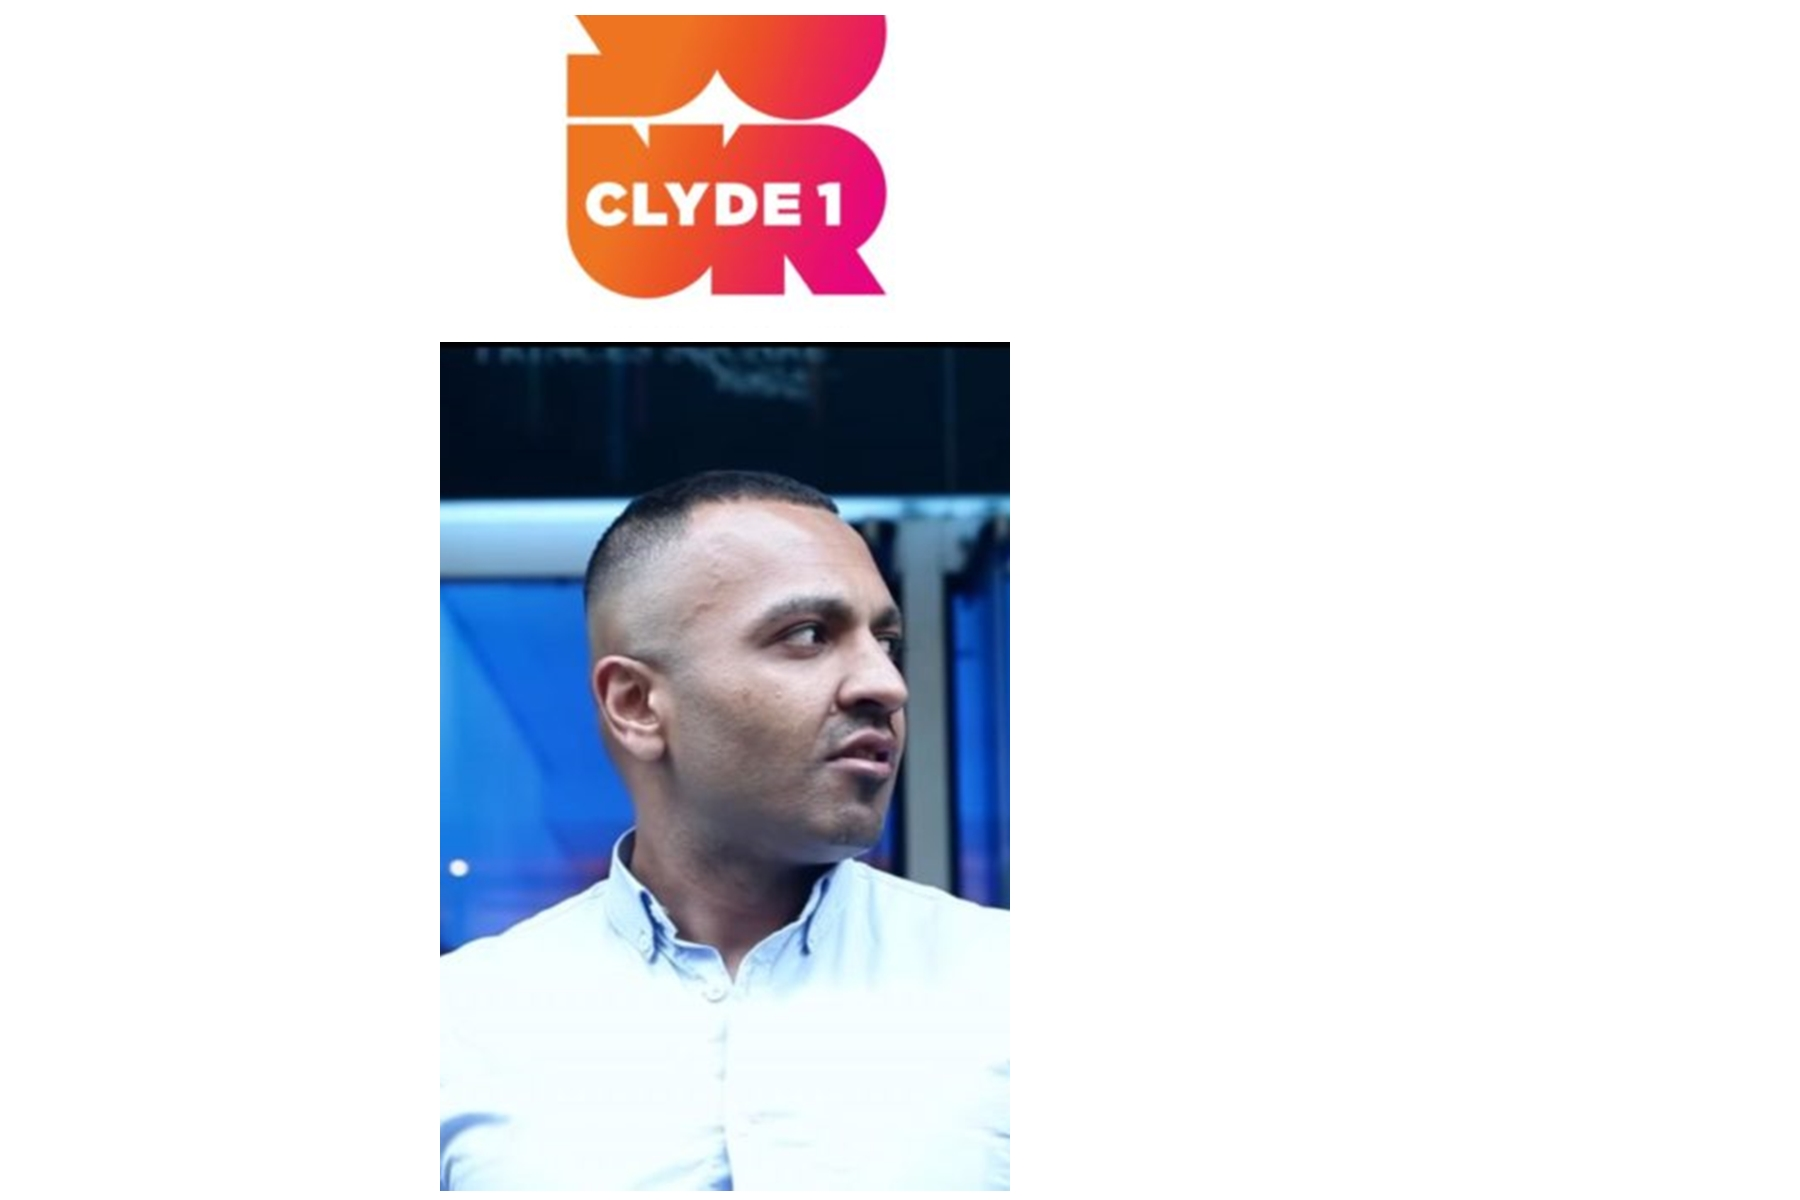 """So Called Glasgow Clyde 1 """"Fake News Reporter"""" Kerri-Ann Docherty Spreads Misinformation About Adnan Ahmed Being Remanded After Court Appearance"""